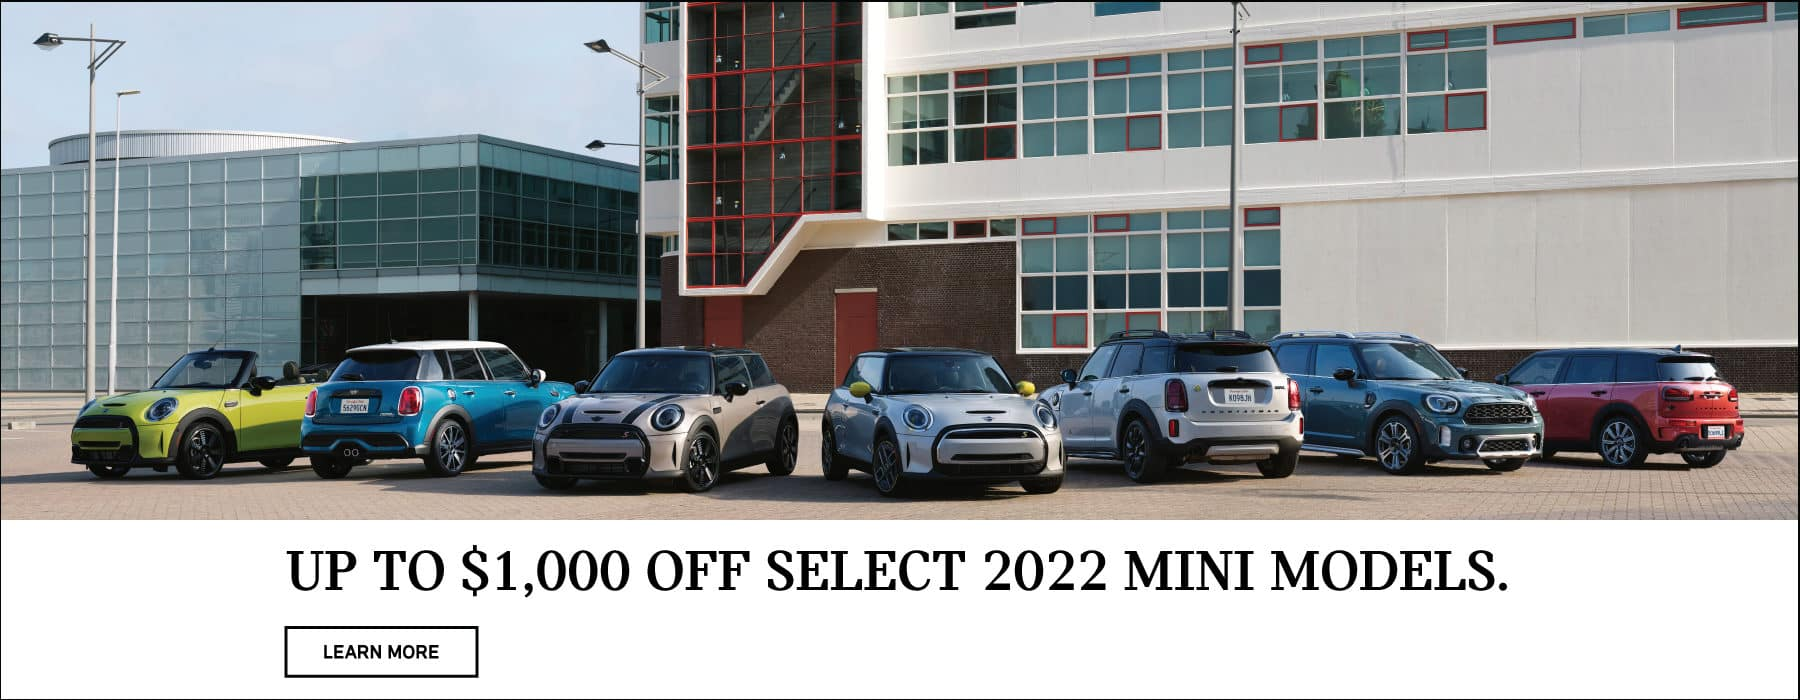 Receive up to $1,000 off on select 2022 MINI models. Click to learn more.